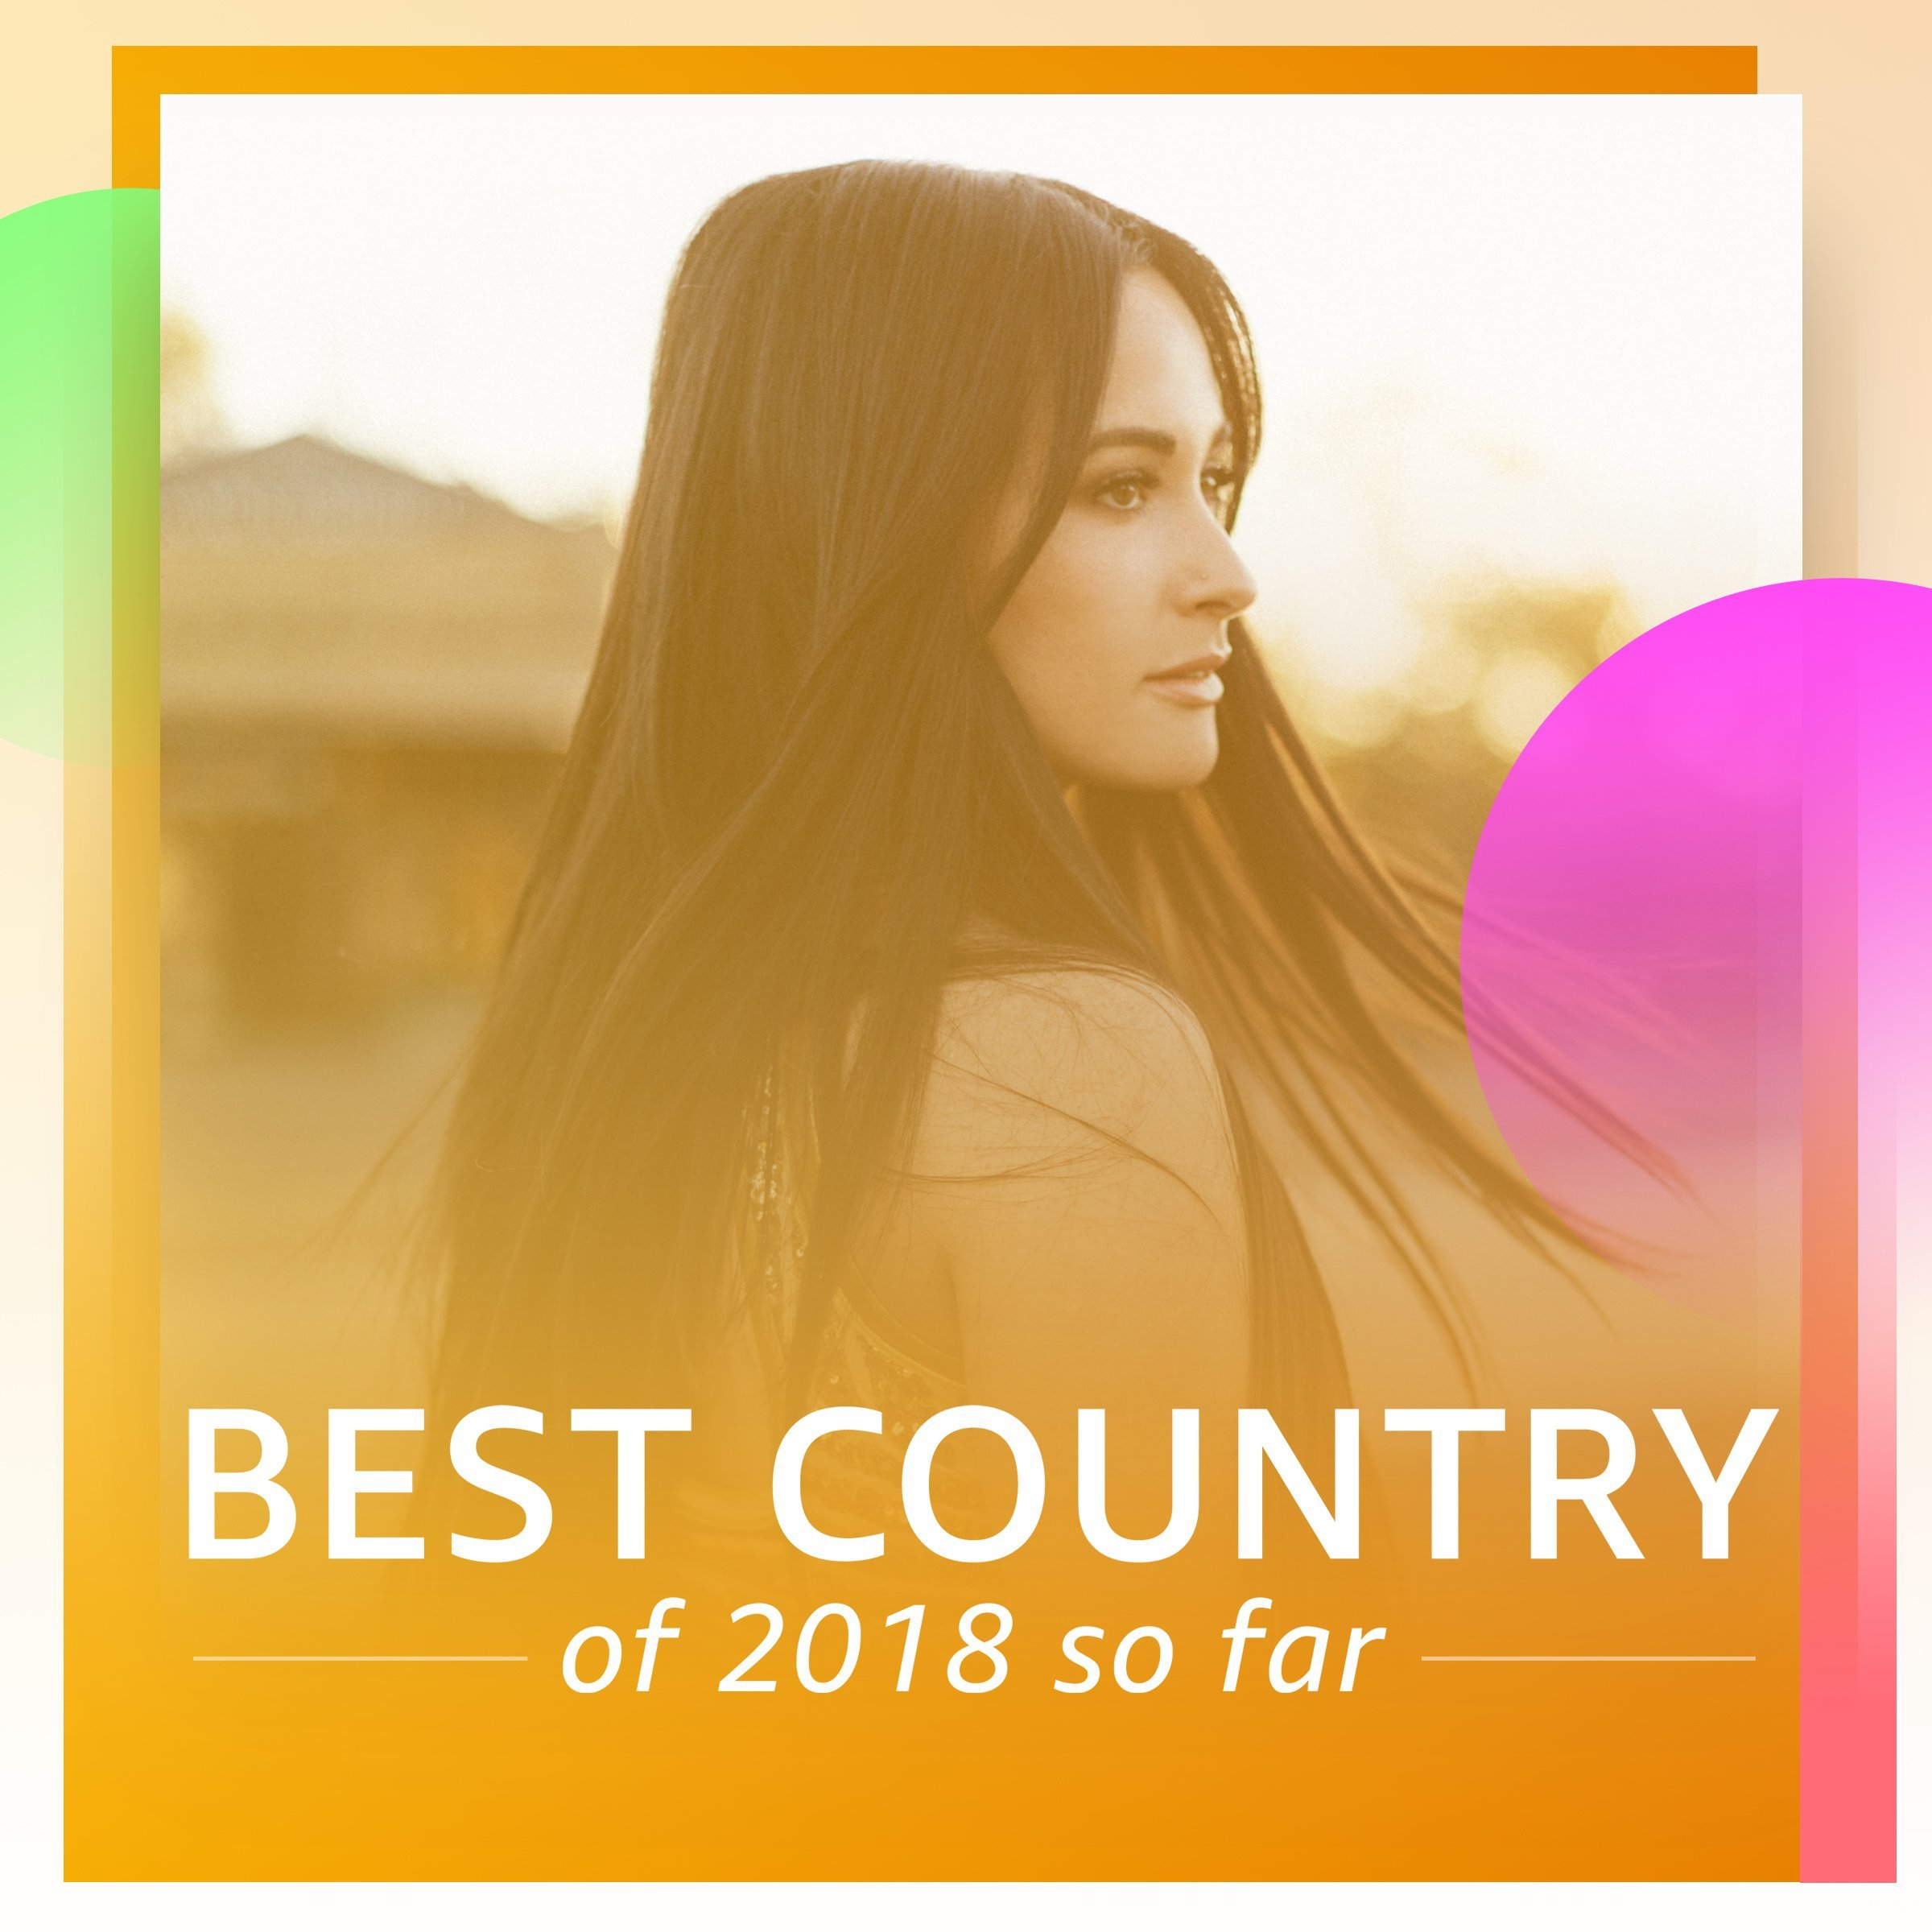 Best Country of 2018 So Far